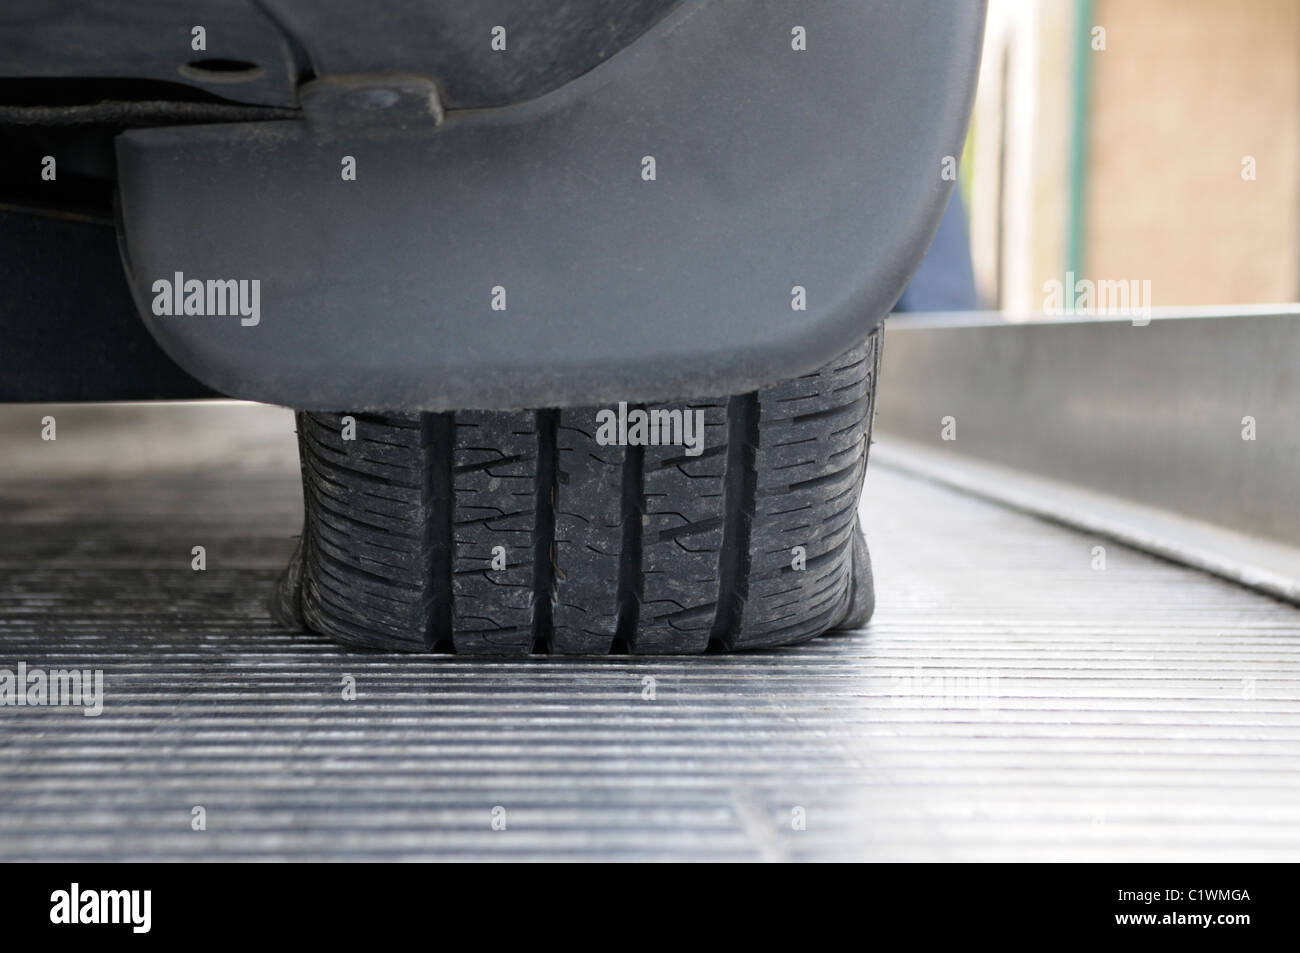 Flat tire on car on top of a flatbed wrecker truck - Stock Image